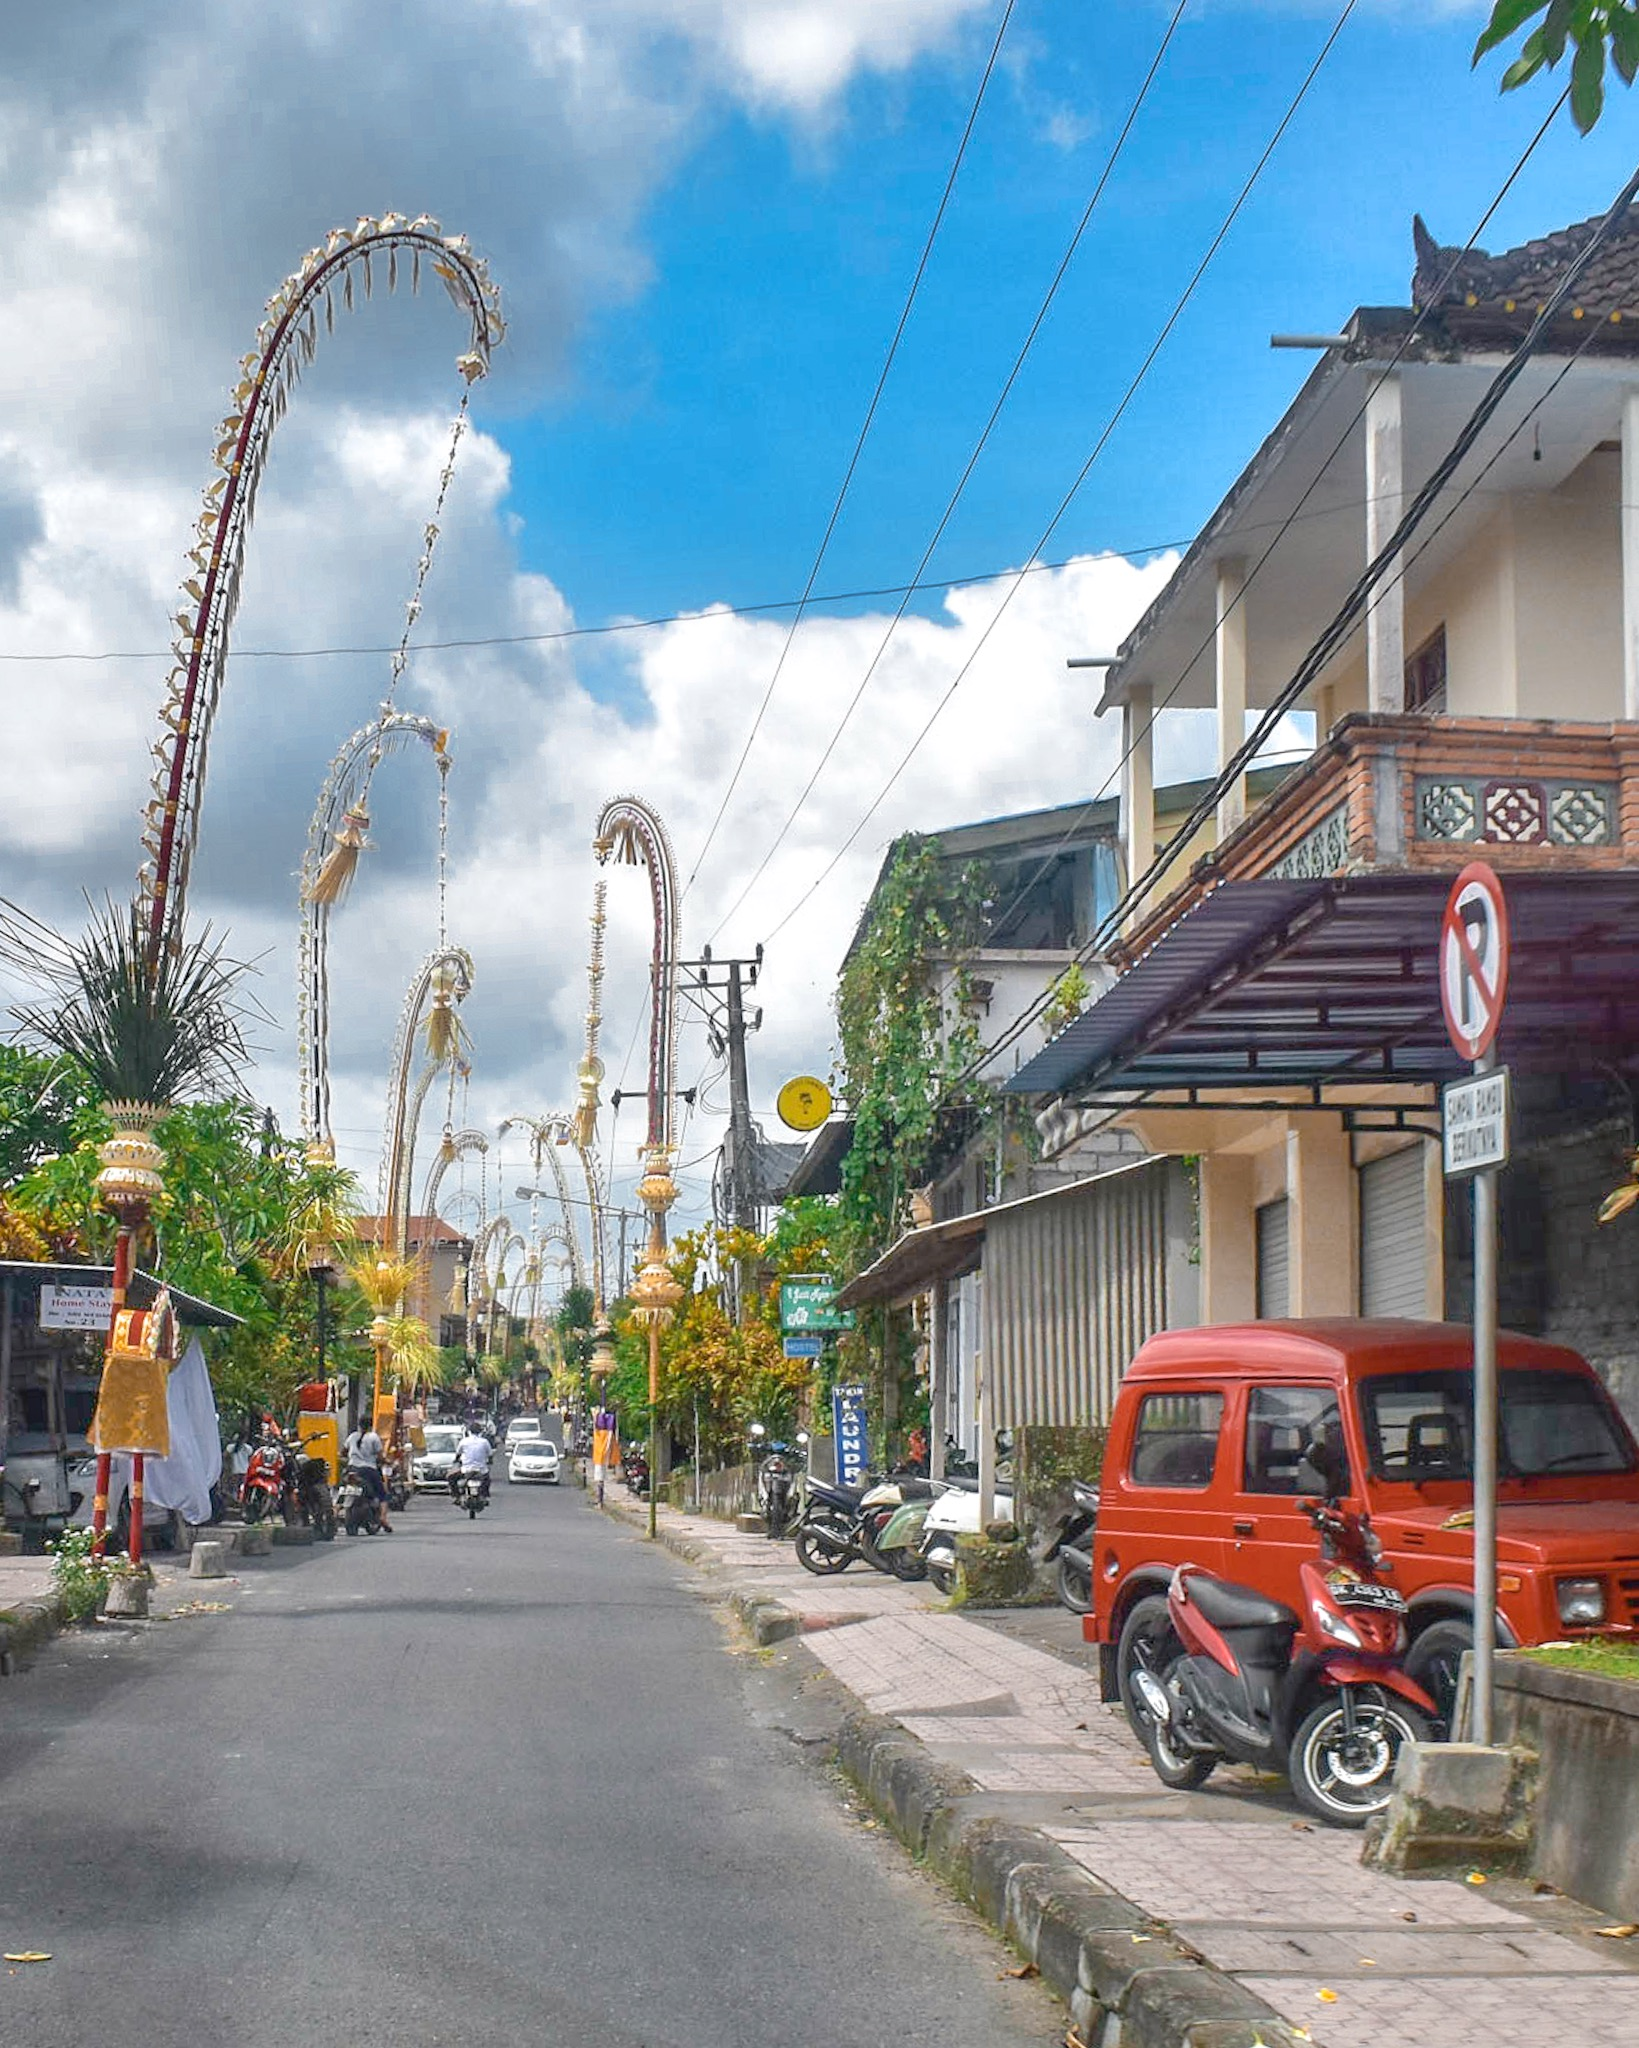 The Streets of Bali on Galungan Day